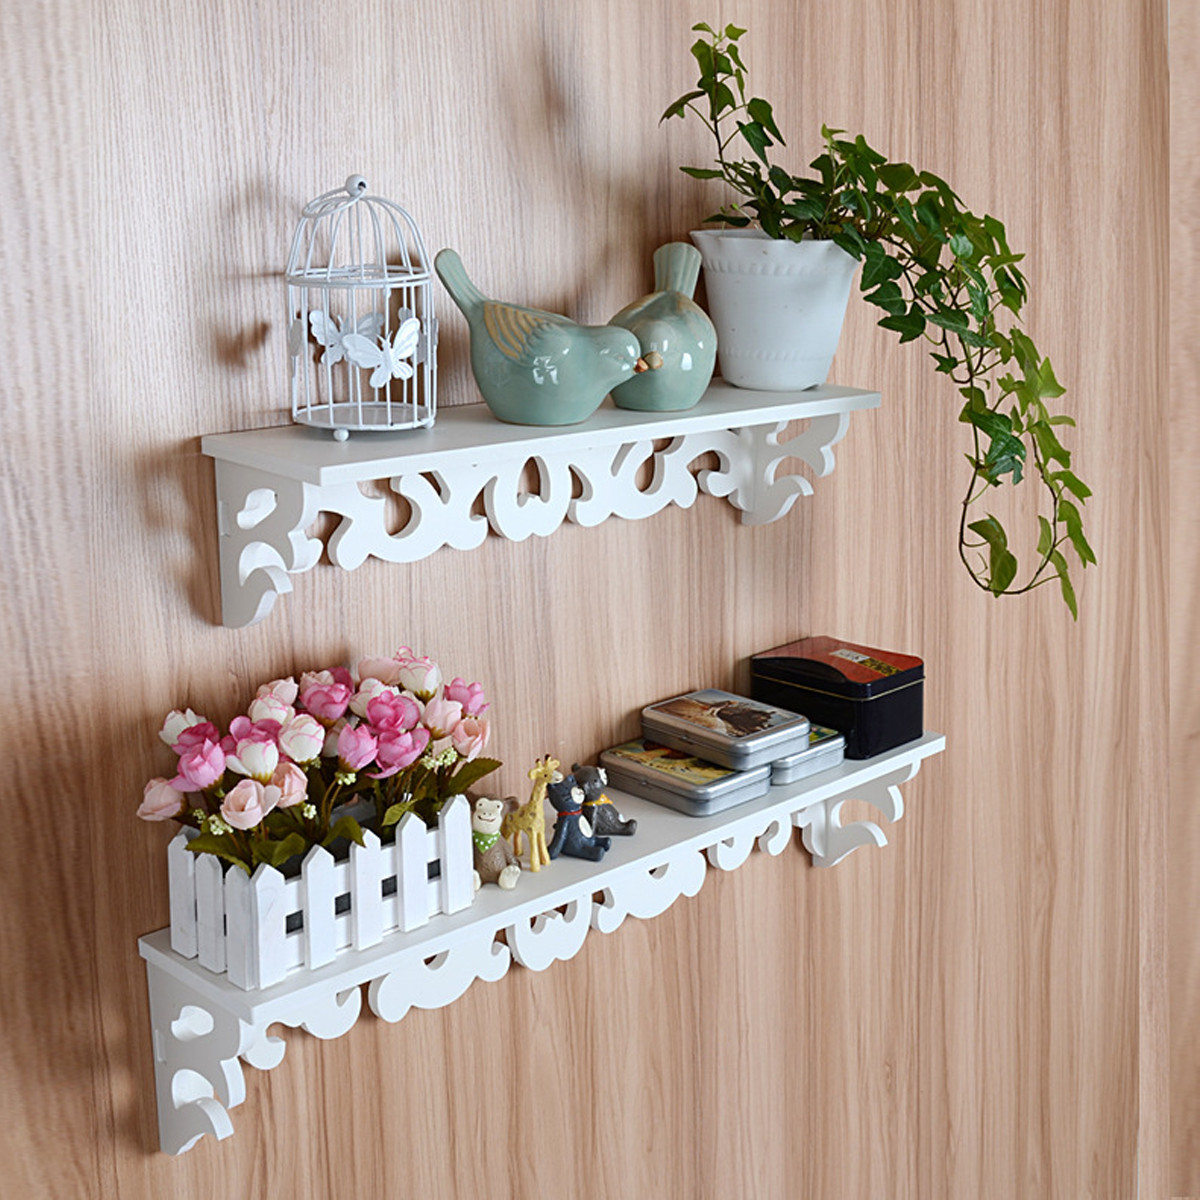 Shabby Chic Shop 1 2x Wall Floating Shelf Shabby Chic Bookshelf For Home